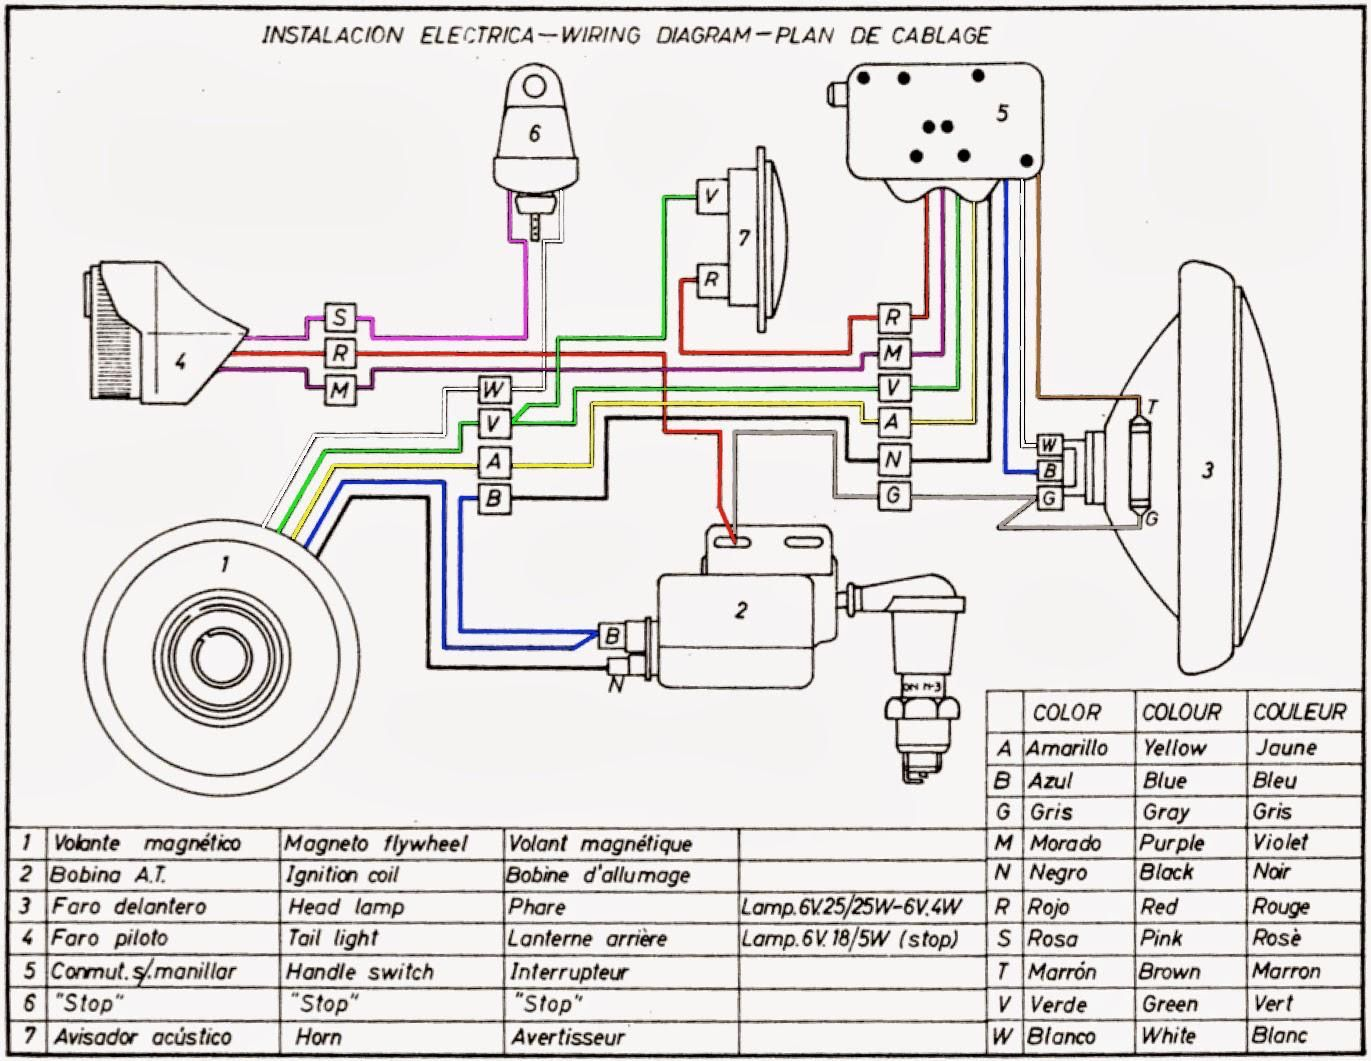 hight resolution of puch wiring diagram wiring diagrampuch wiring diagrams for motorcycles z3 wiring library diagrambultaco wiring diagram wiring